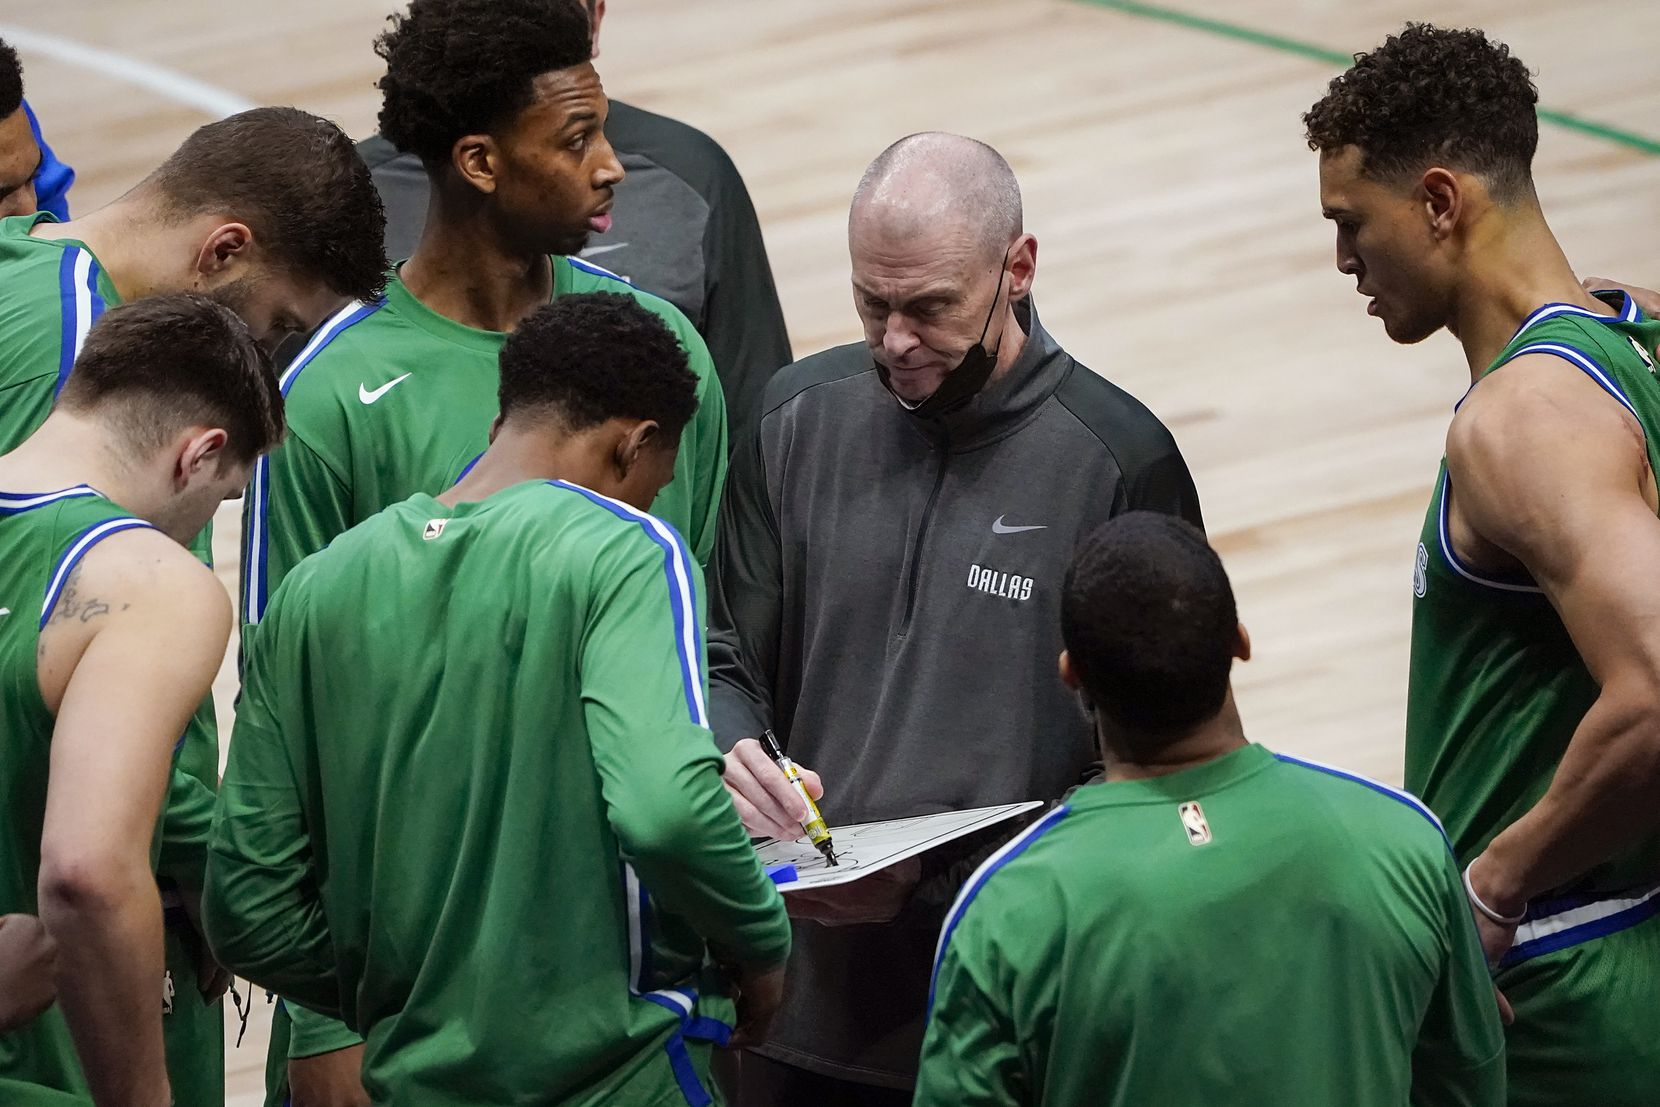 Mavericks head coach Rick Carlisle goes over plays with the team during the first half of a game against the Sacramento Kings.